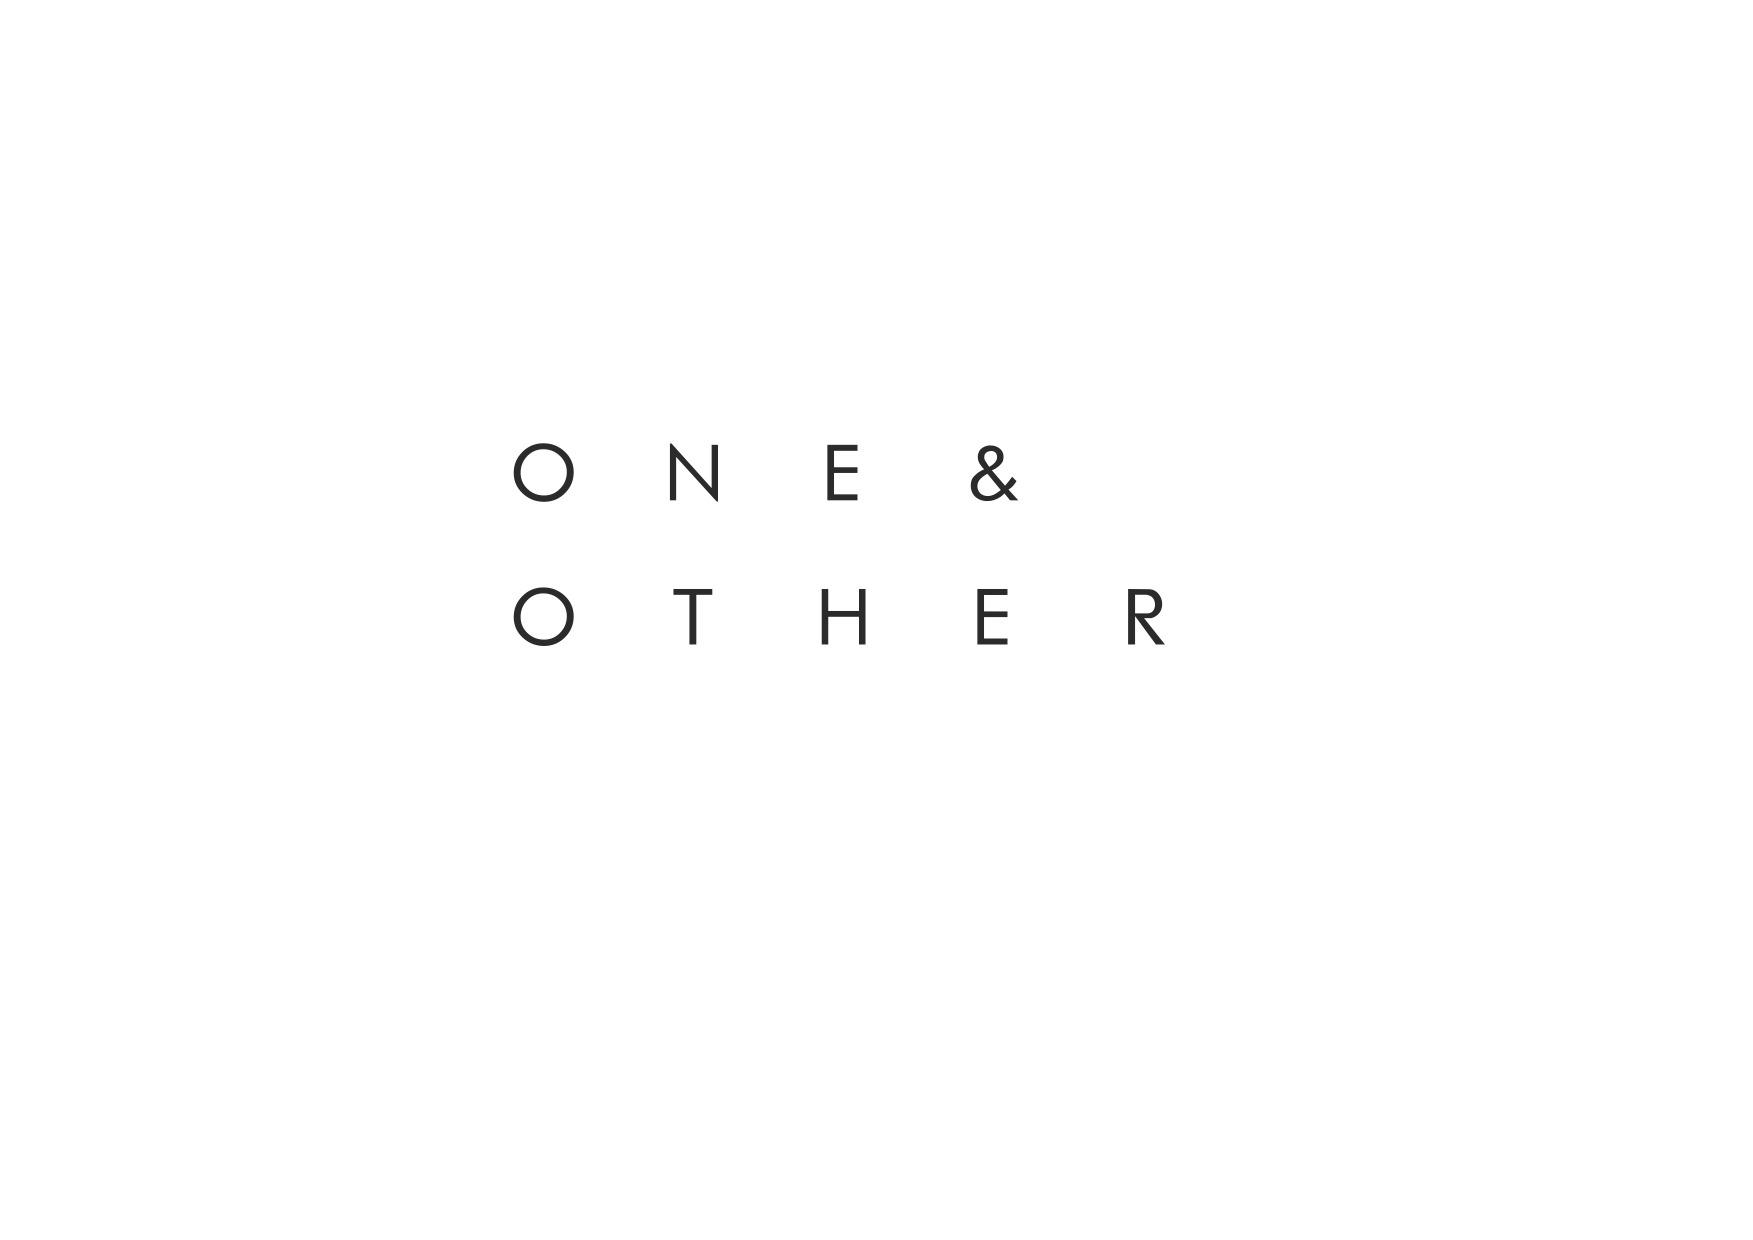 ONE & OTHER